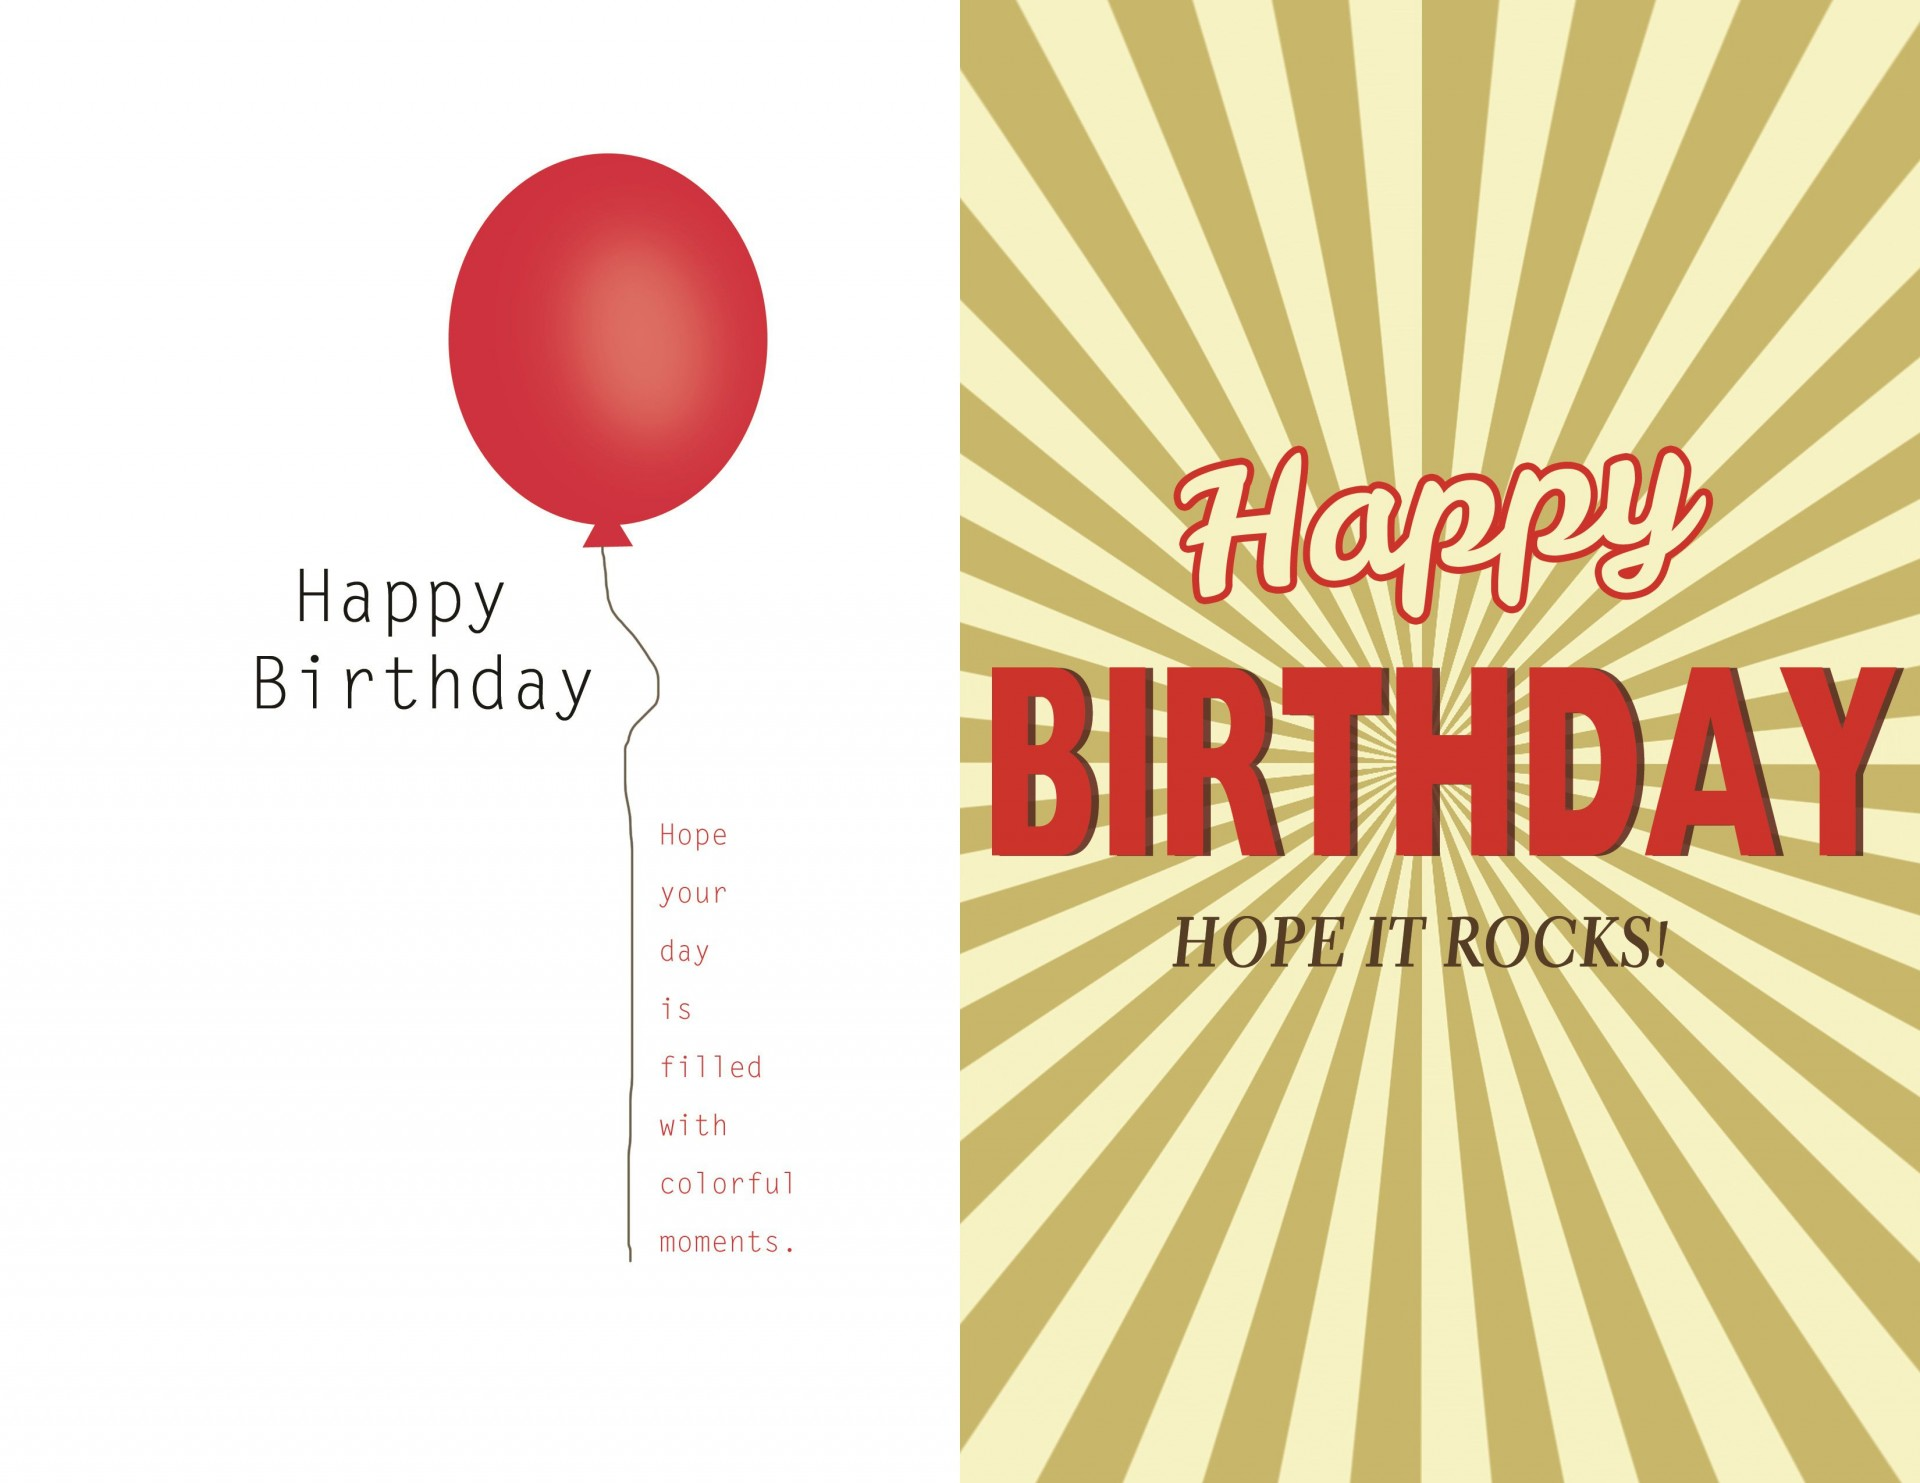 006 Exceptional Birthday Card Template Free Example  Invitation Photoshop Download Word1920